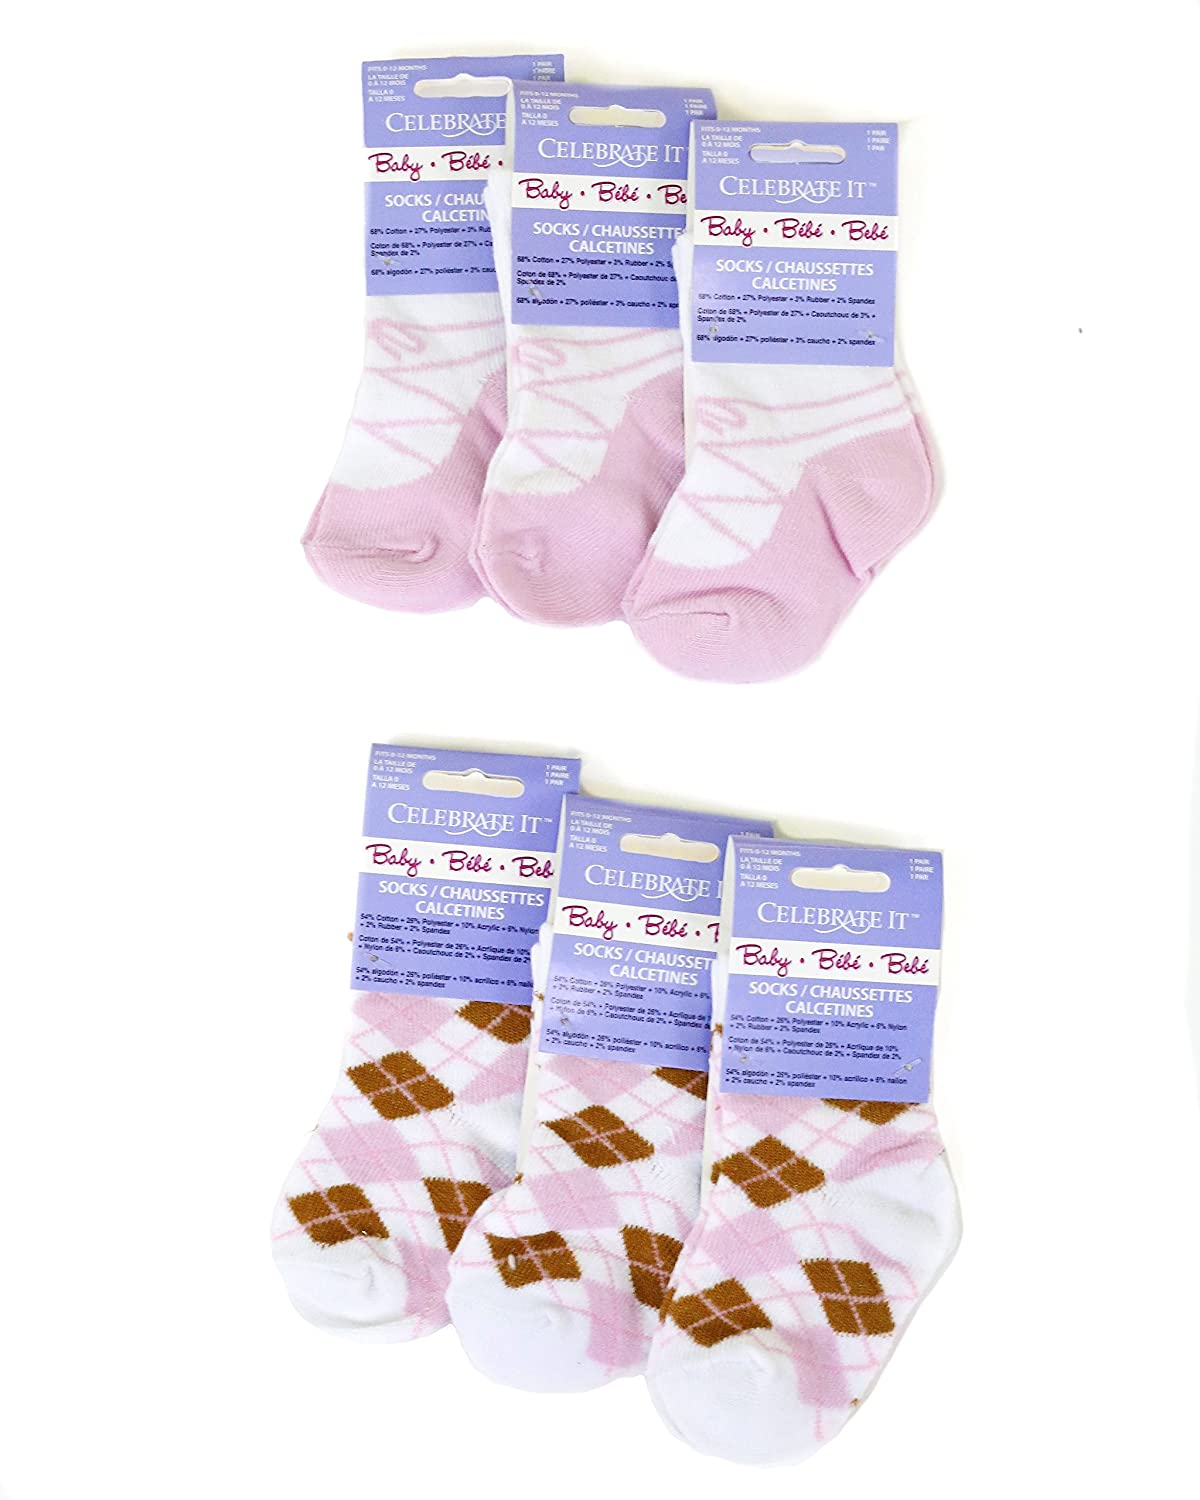 Amazon.com: Baby Girl Socks, Durable, Kick Proof, Fit 0-12 Months, 6 Pairs Per Pack, Warm, Cozy: Baby